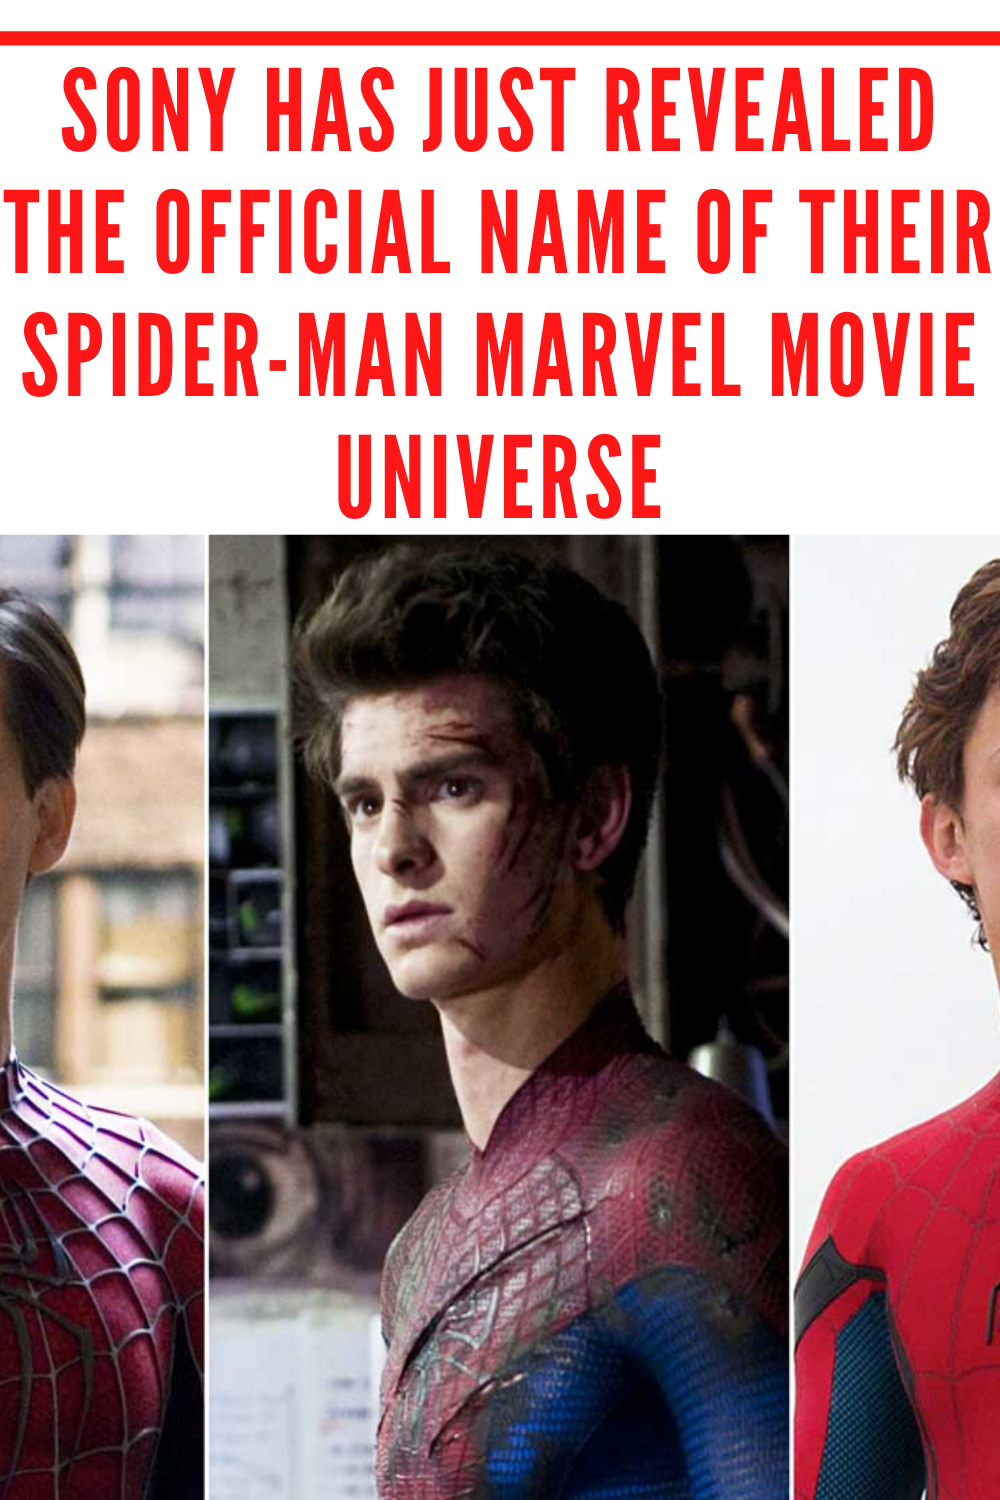 The official Spider-Man movie profile has announced the offer they have with Amazon Prime that you own all the movies with three different Spider-Men. In that post, he also gave the official title of his Spider-Man Marvel movie universe. #spiderman #marvel #avengers #tomholland #ironman #marvelcomics #peterparker #captainamerica #mcu #comics #spidermanfarfromhome #thor #hulk #cosplay #spidey #avengersendgame #venom #batman #spiderverse #blackwidow #spidermanhomecoming #endgame #tonystark #thanos